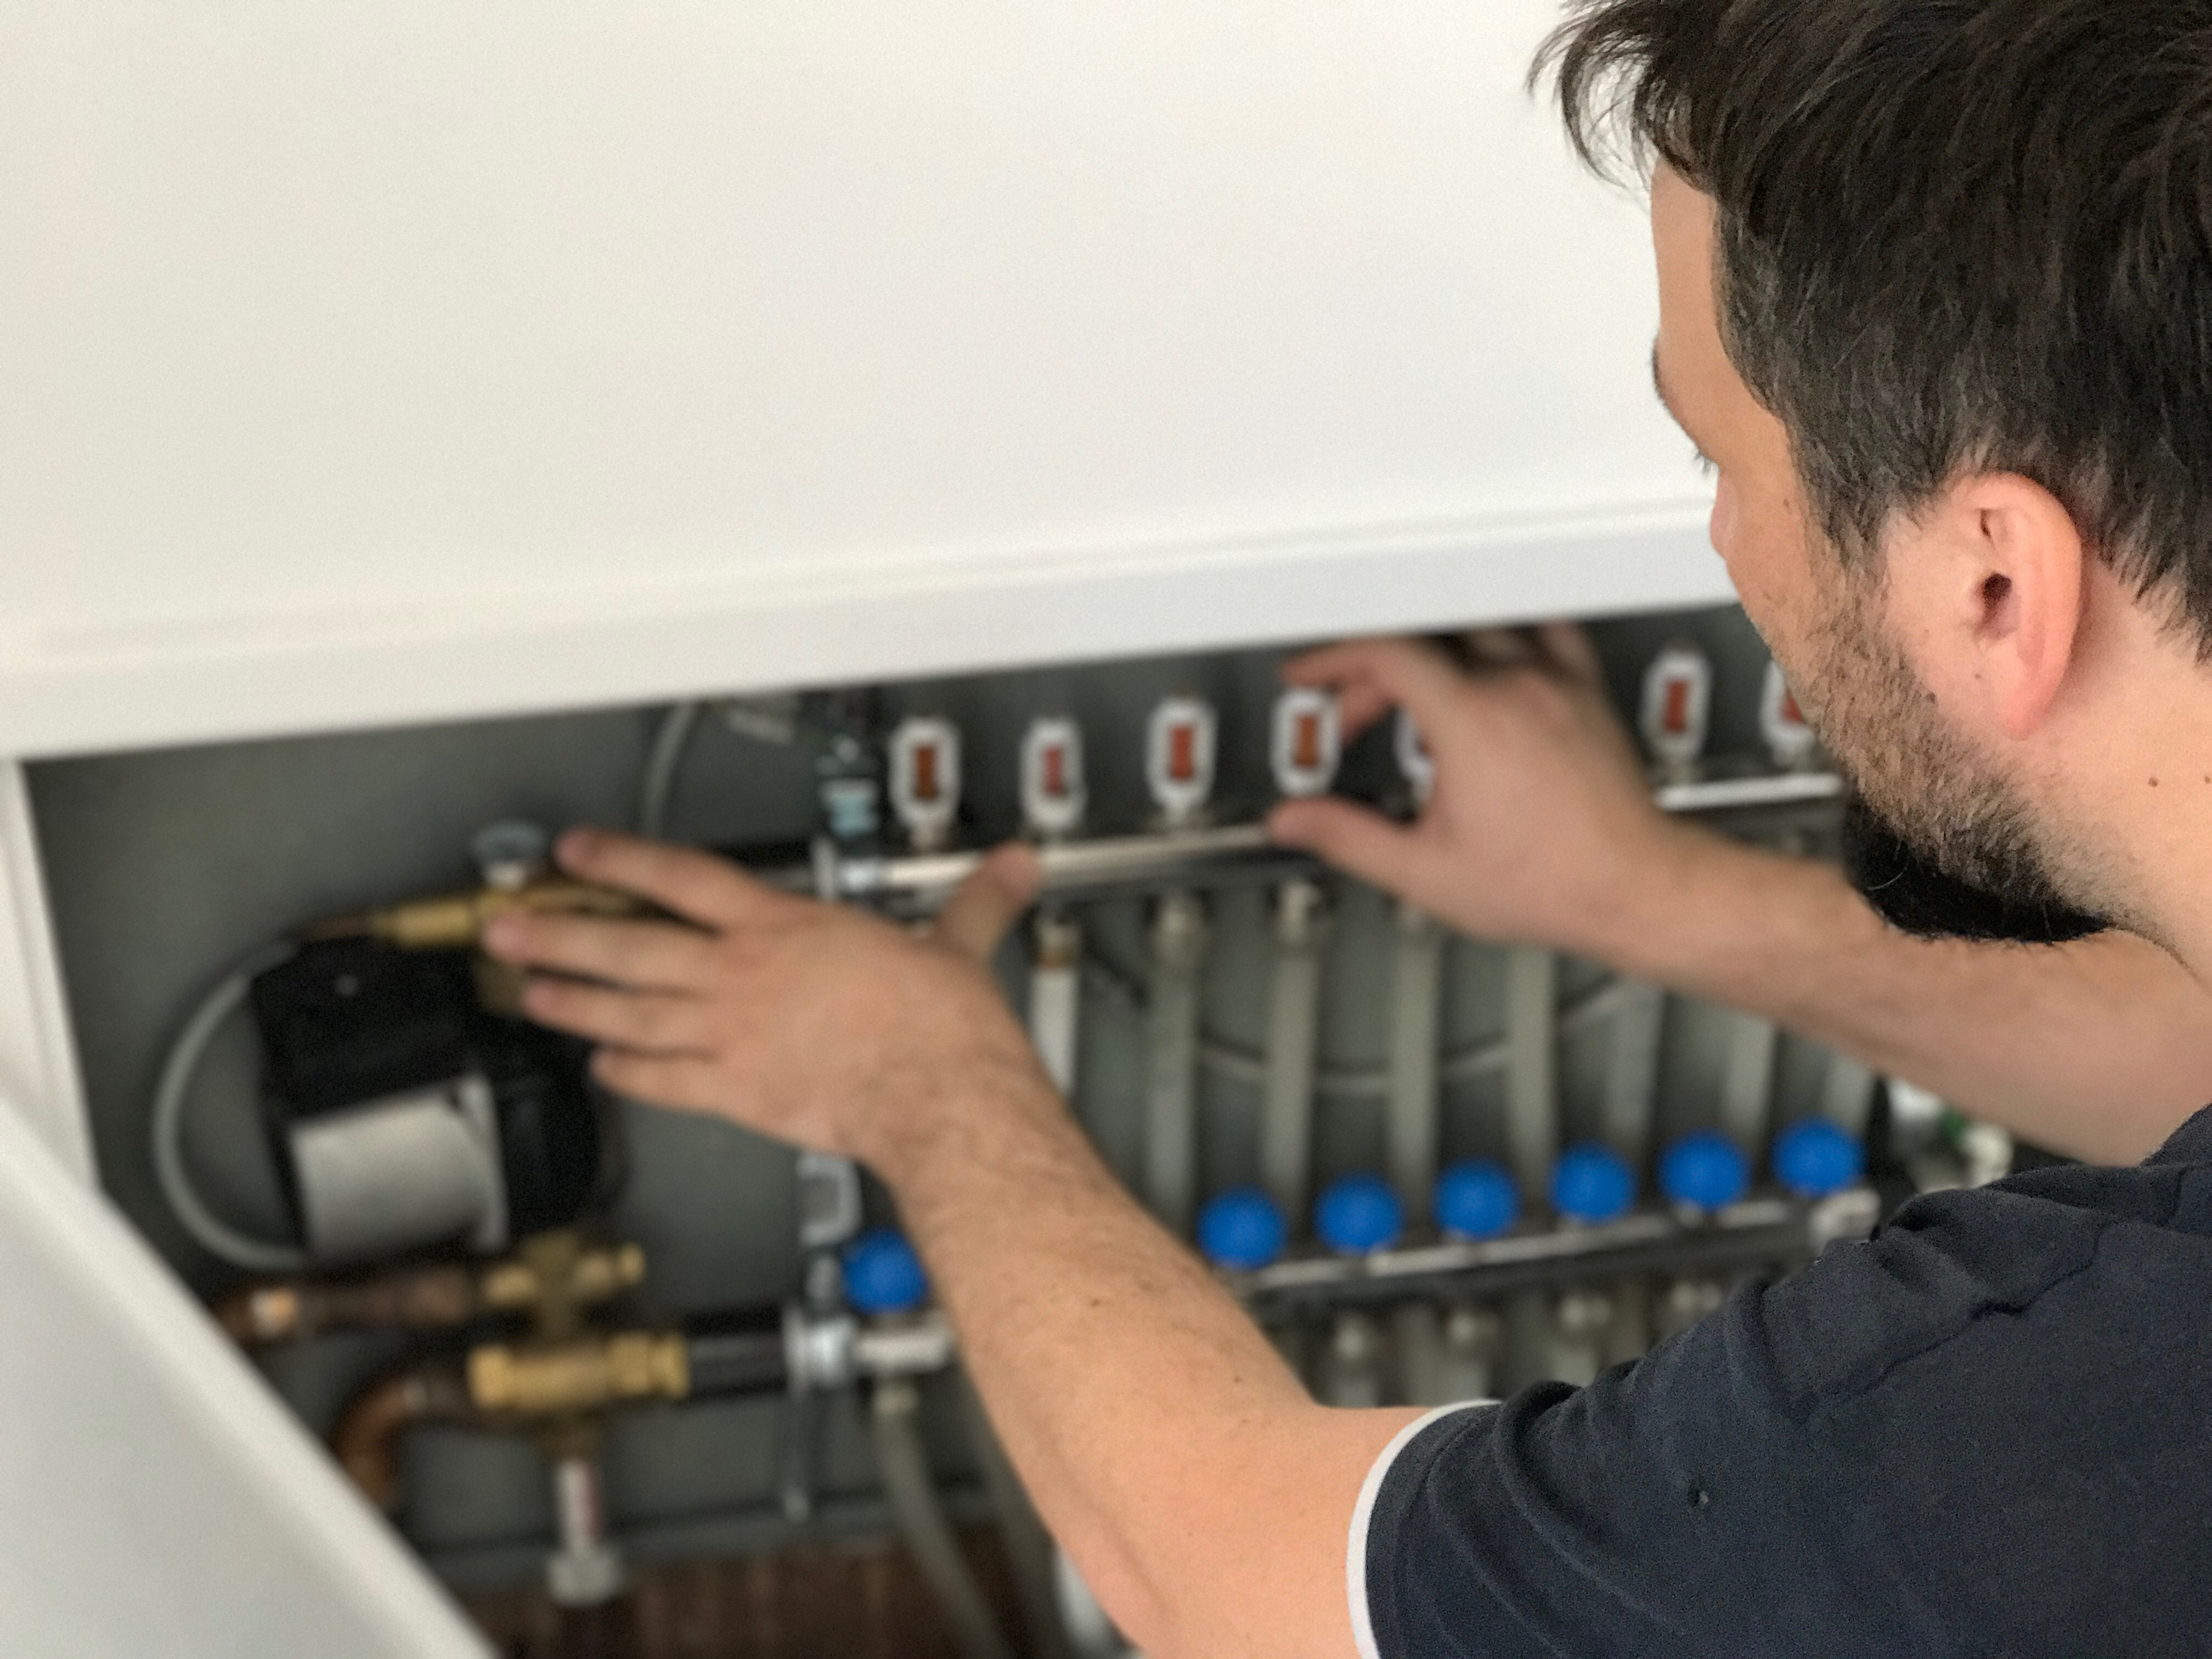 Heat Pumps With Auxiliary Heat Vs  Without Auxiliary Heat | Hunker